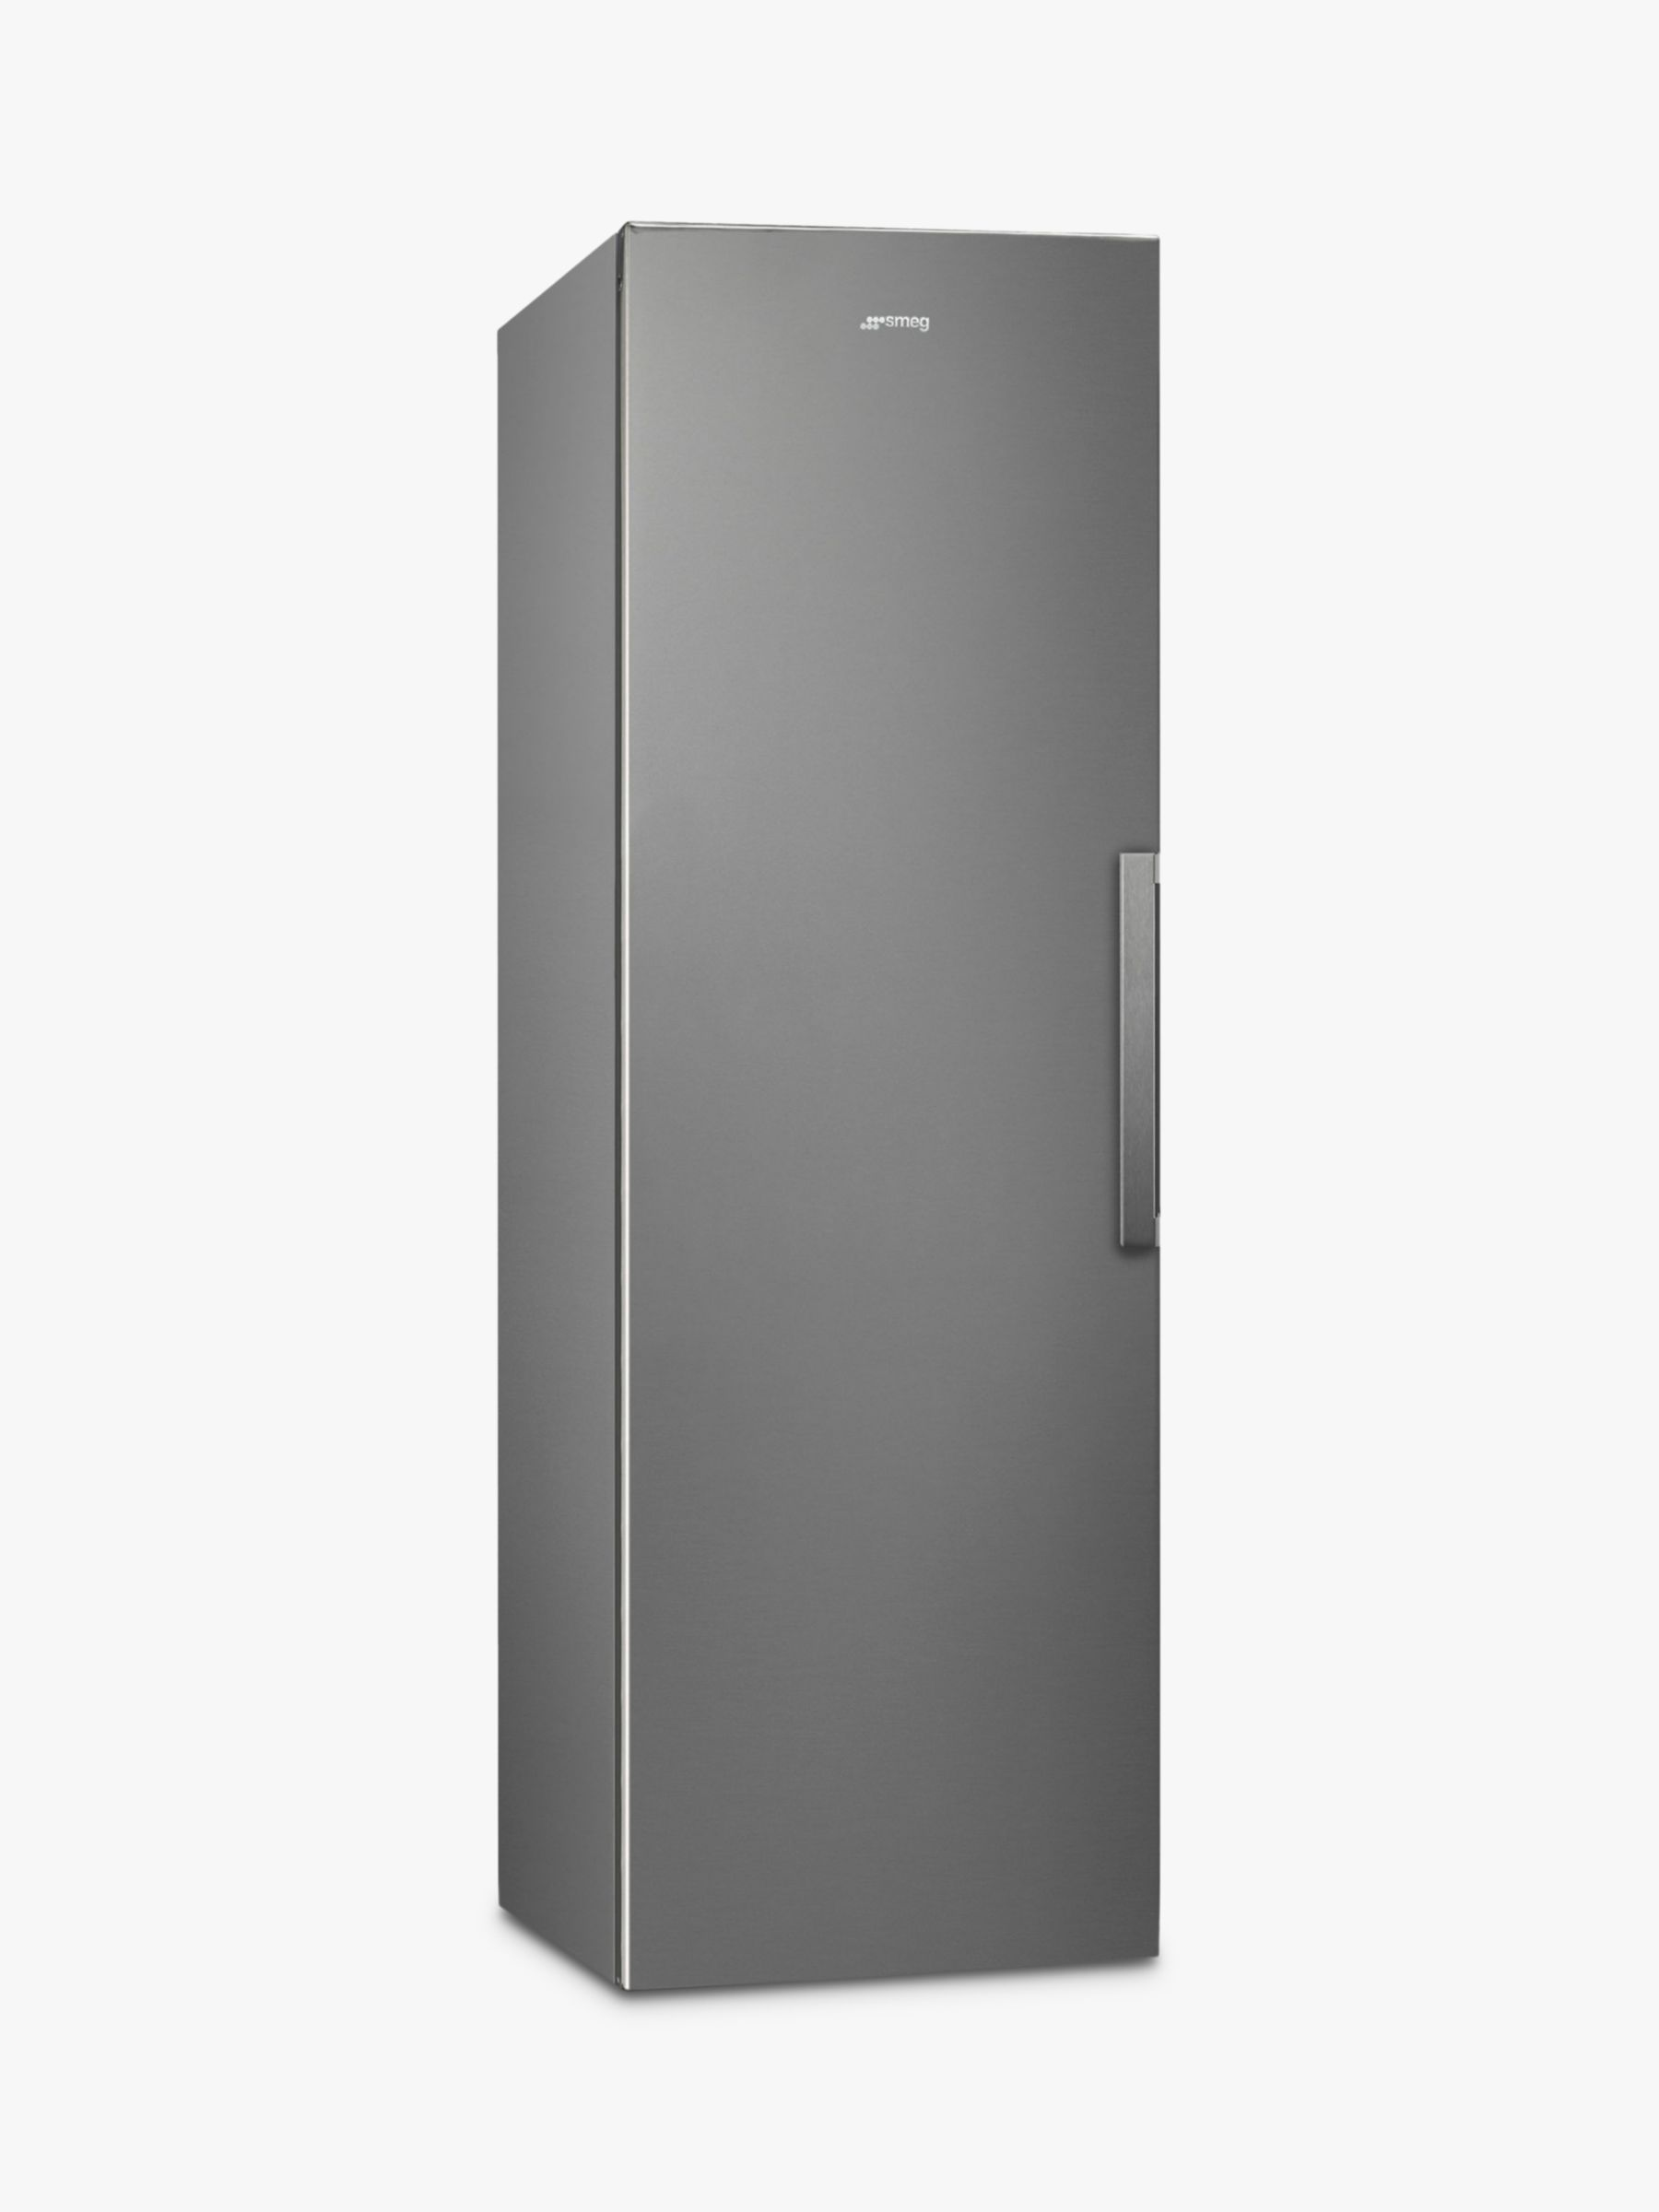 Smeg Smeg UK26PXNF4 Tall Freestanding Freezer, A+ Energy Rating, 60cm Wide, Silver